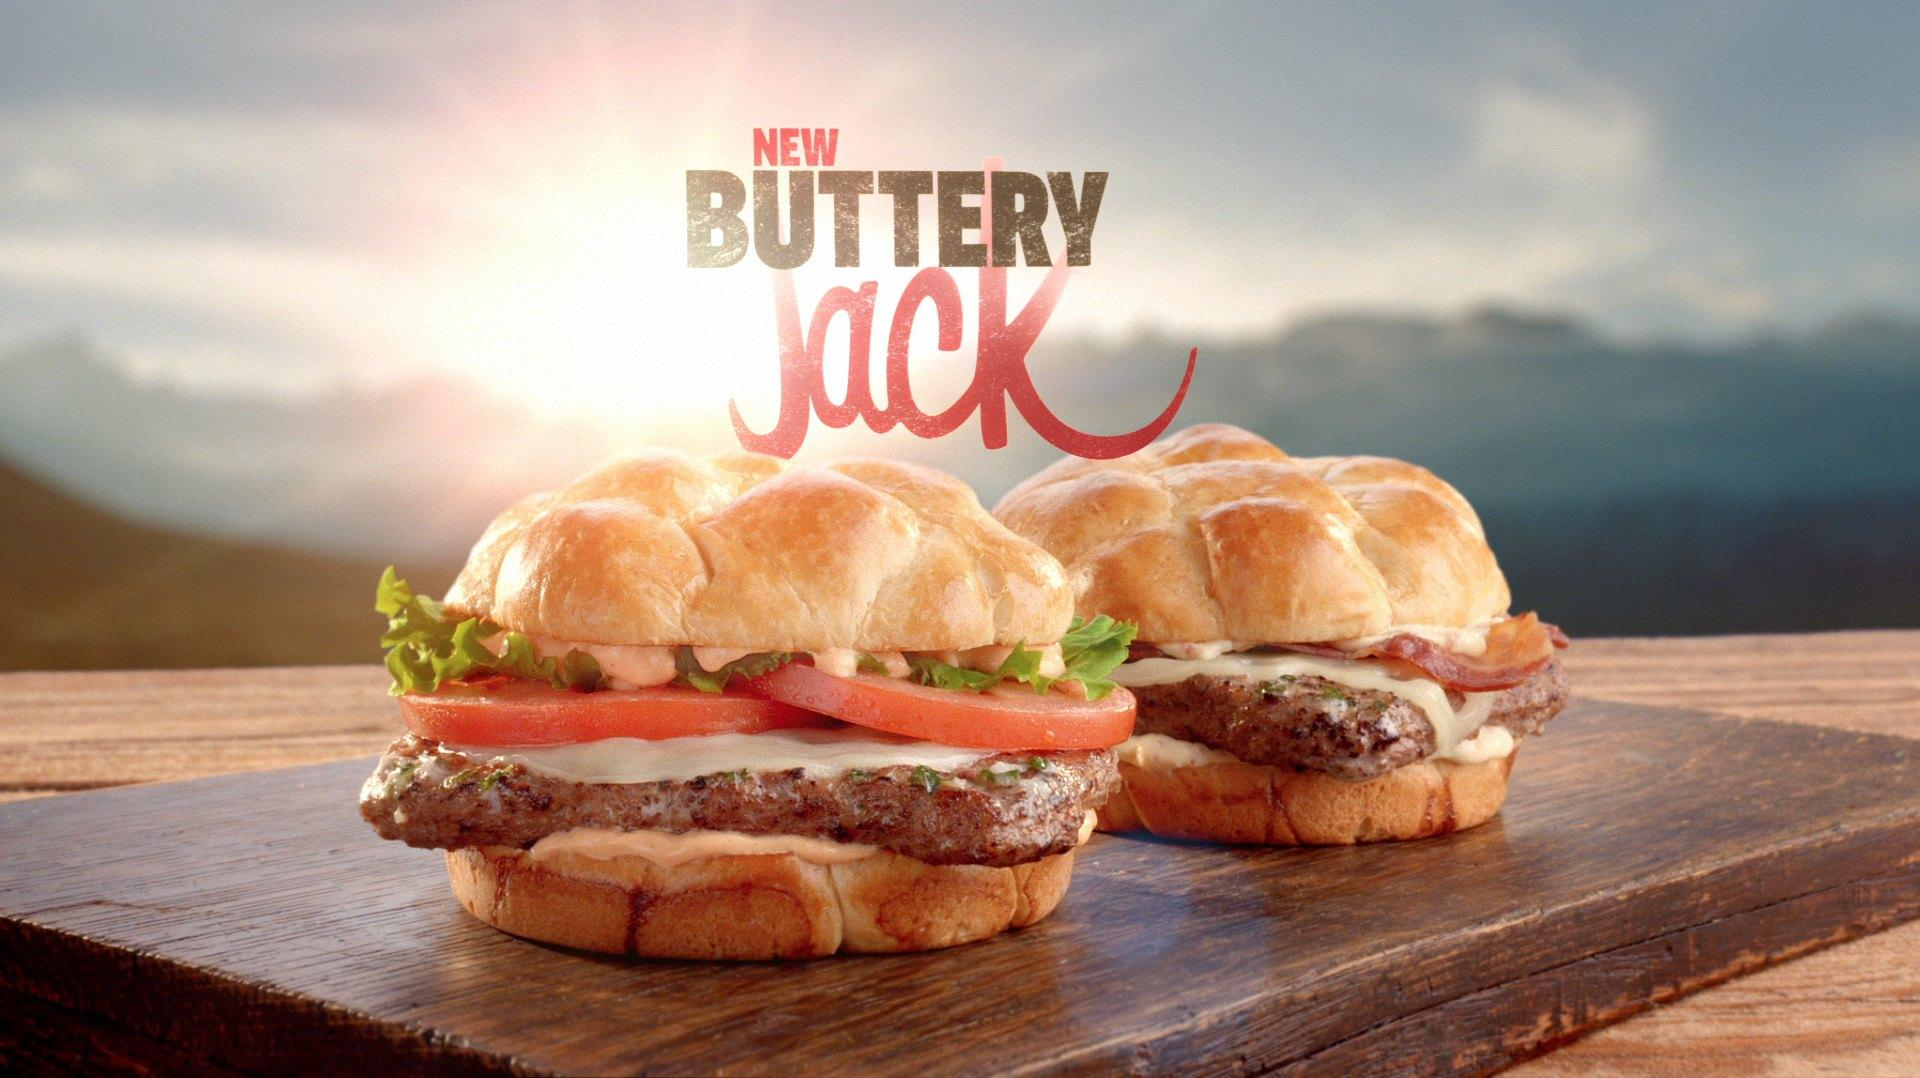 Buy One Get One FREE Buttery Jack Burger @ Jack in the Box